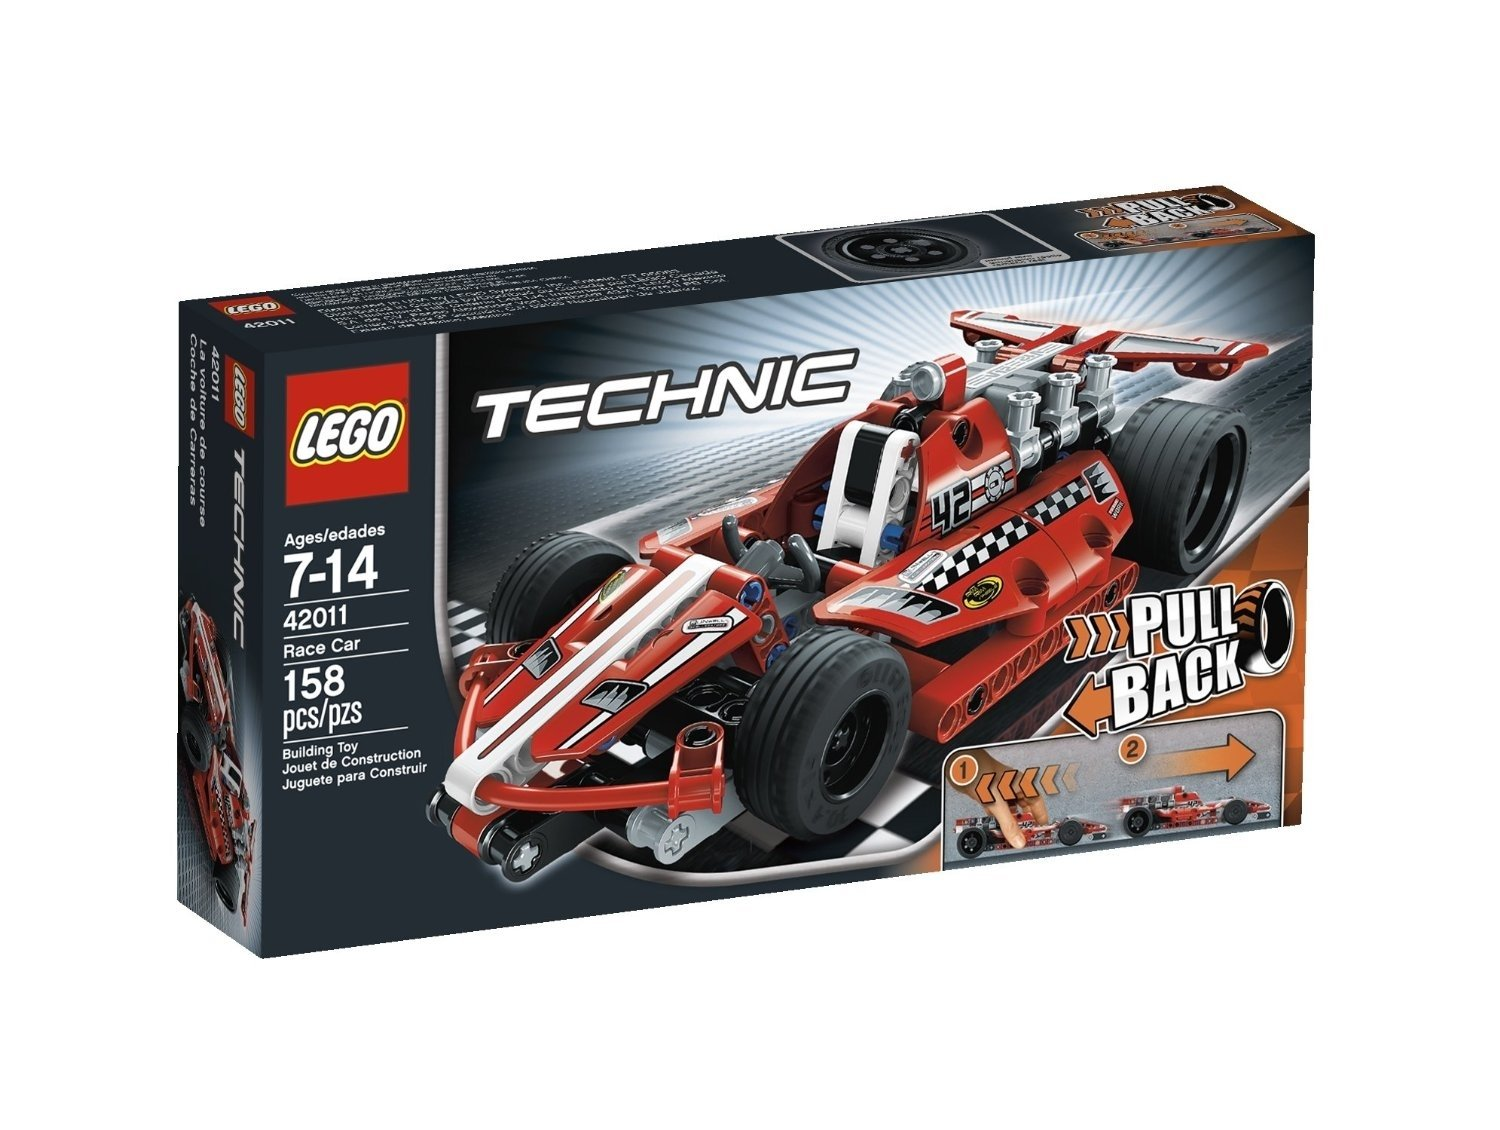 10 Awesome Gift Ideas For 7 Year Old Boys gift ideas for 10 to 13 year old boys 46 2020